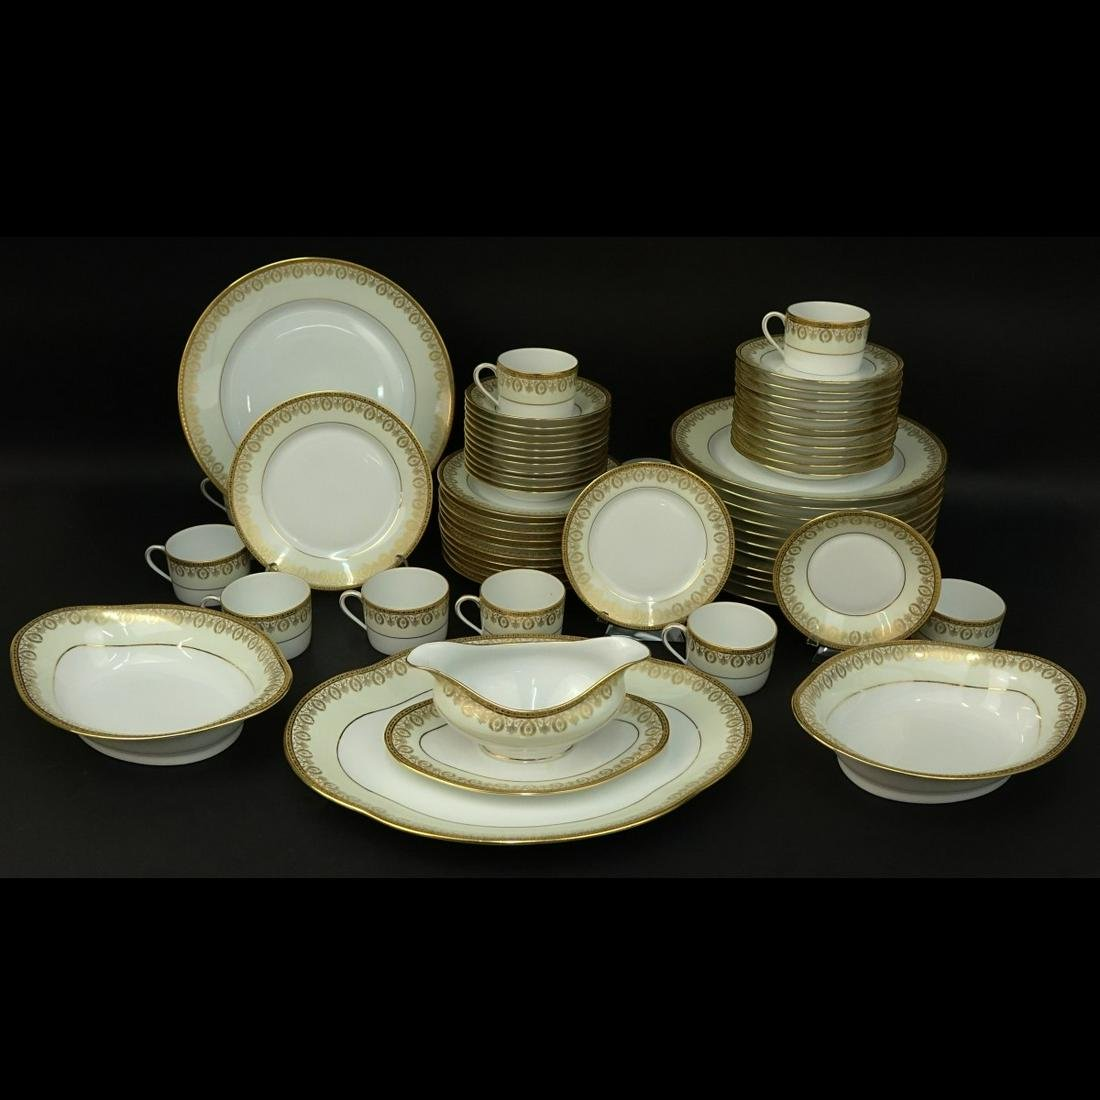 Sixty One (61) Pc. Limoges Porcelain Service